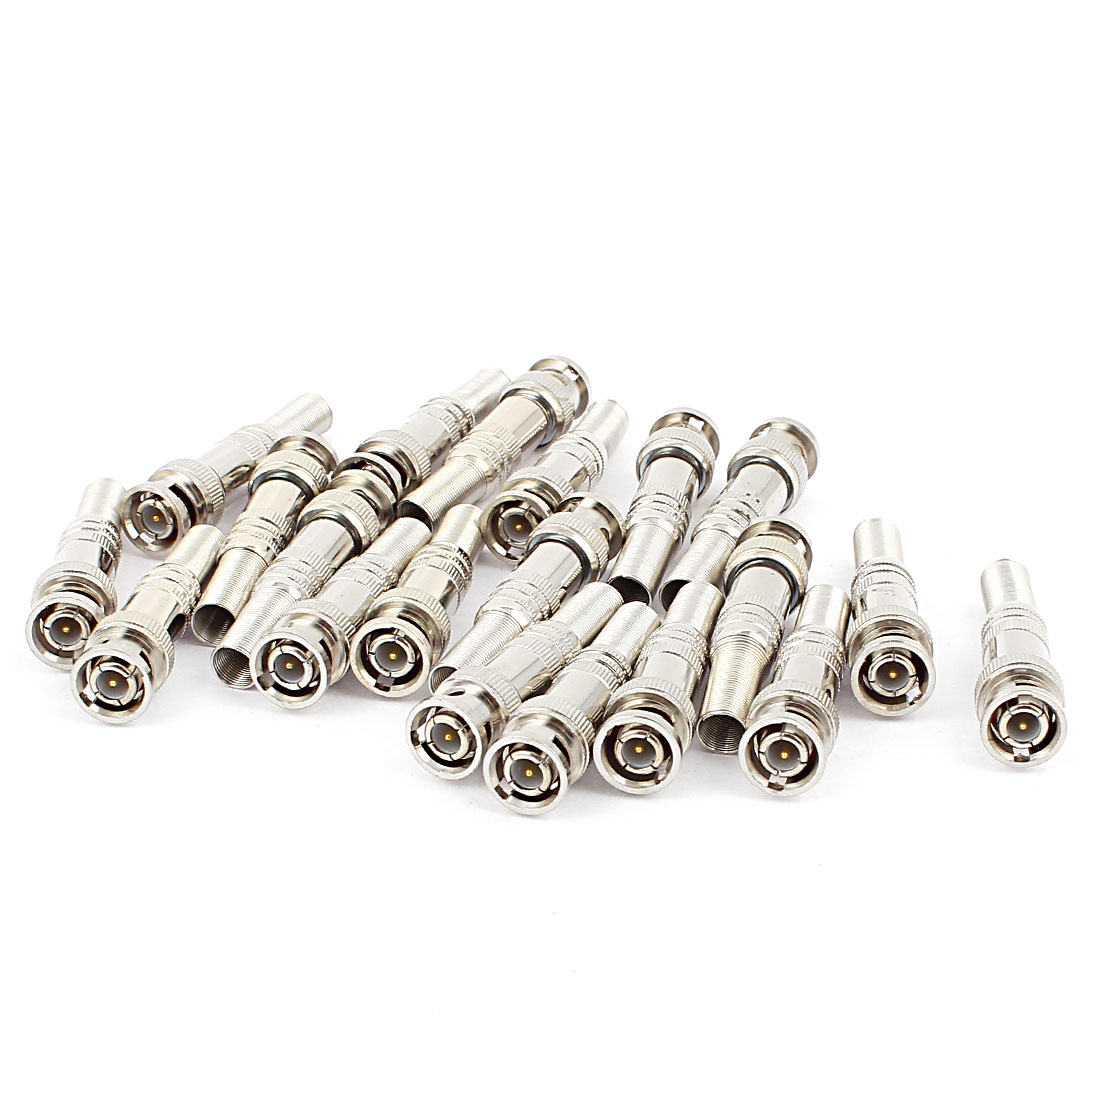 20pcs Solder Twist Spring BNC Male Jack RF Video Adapter Connector for Camera CCTV